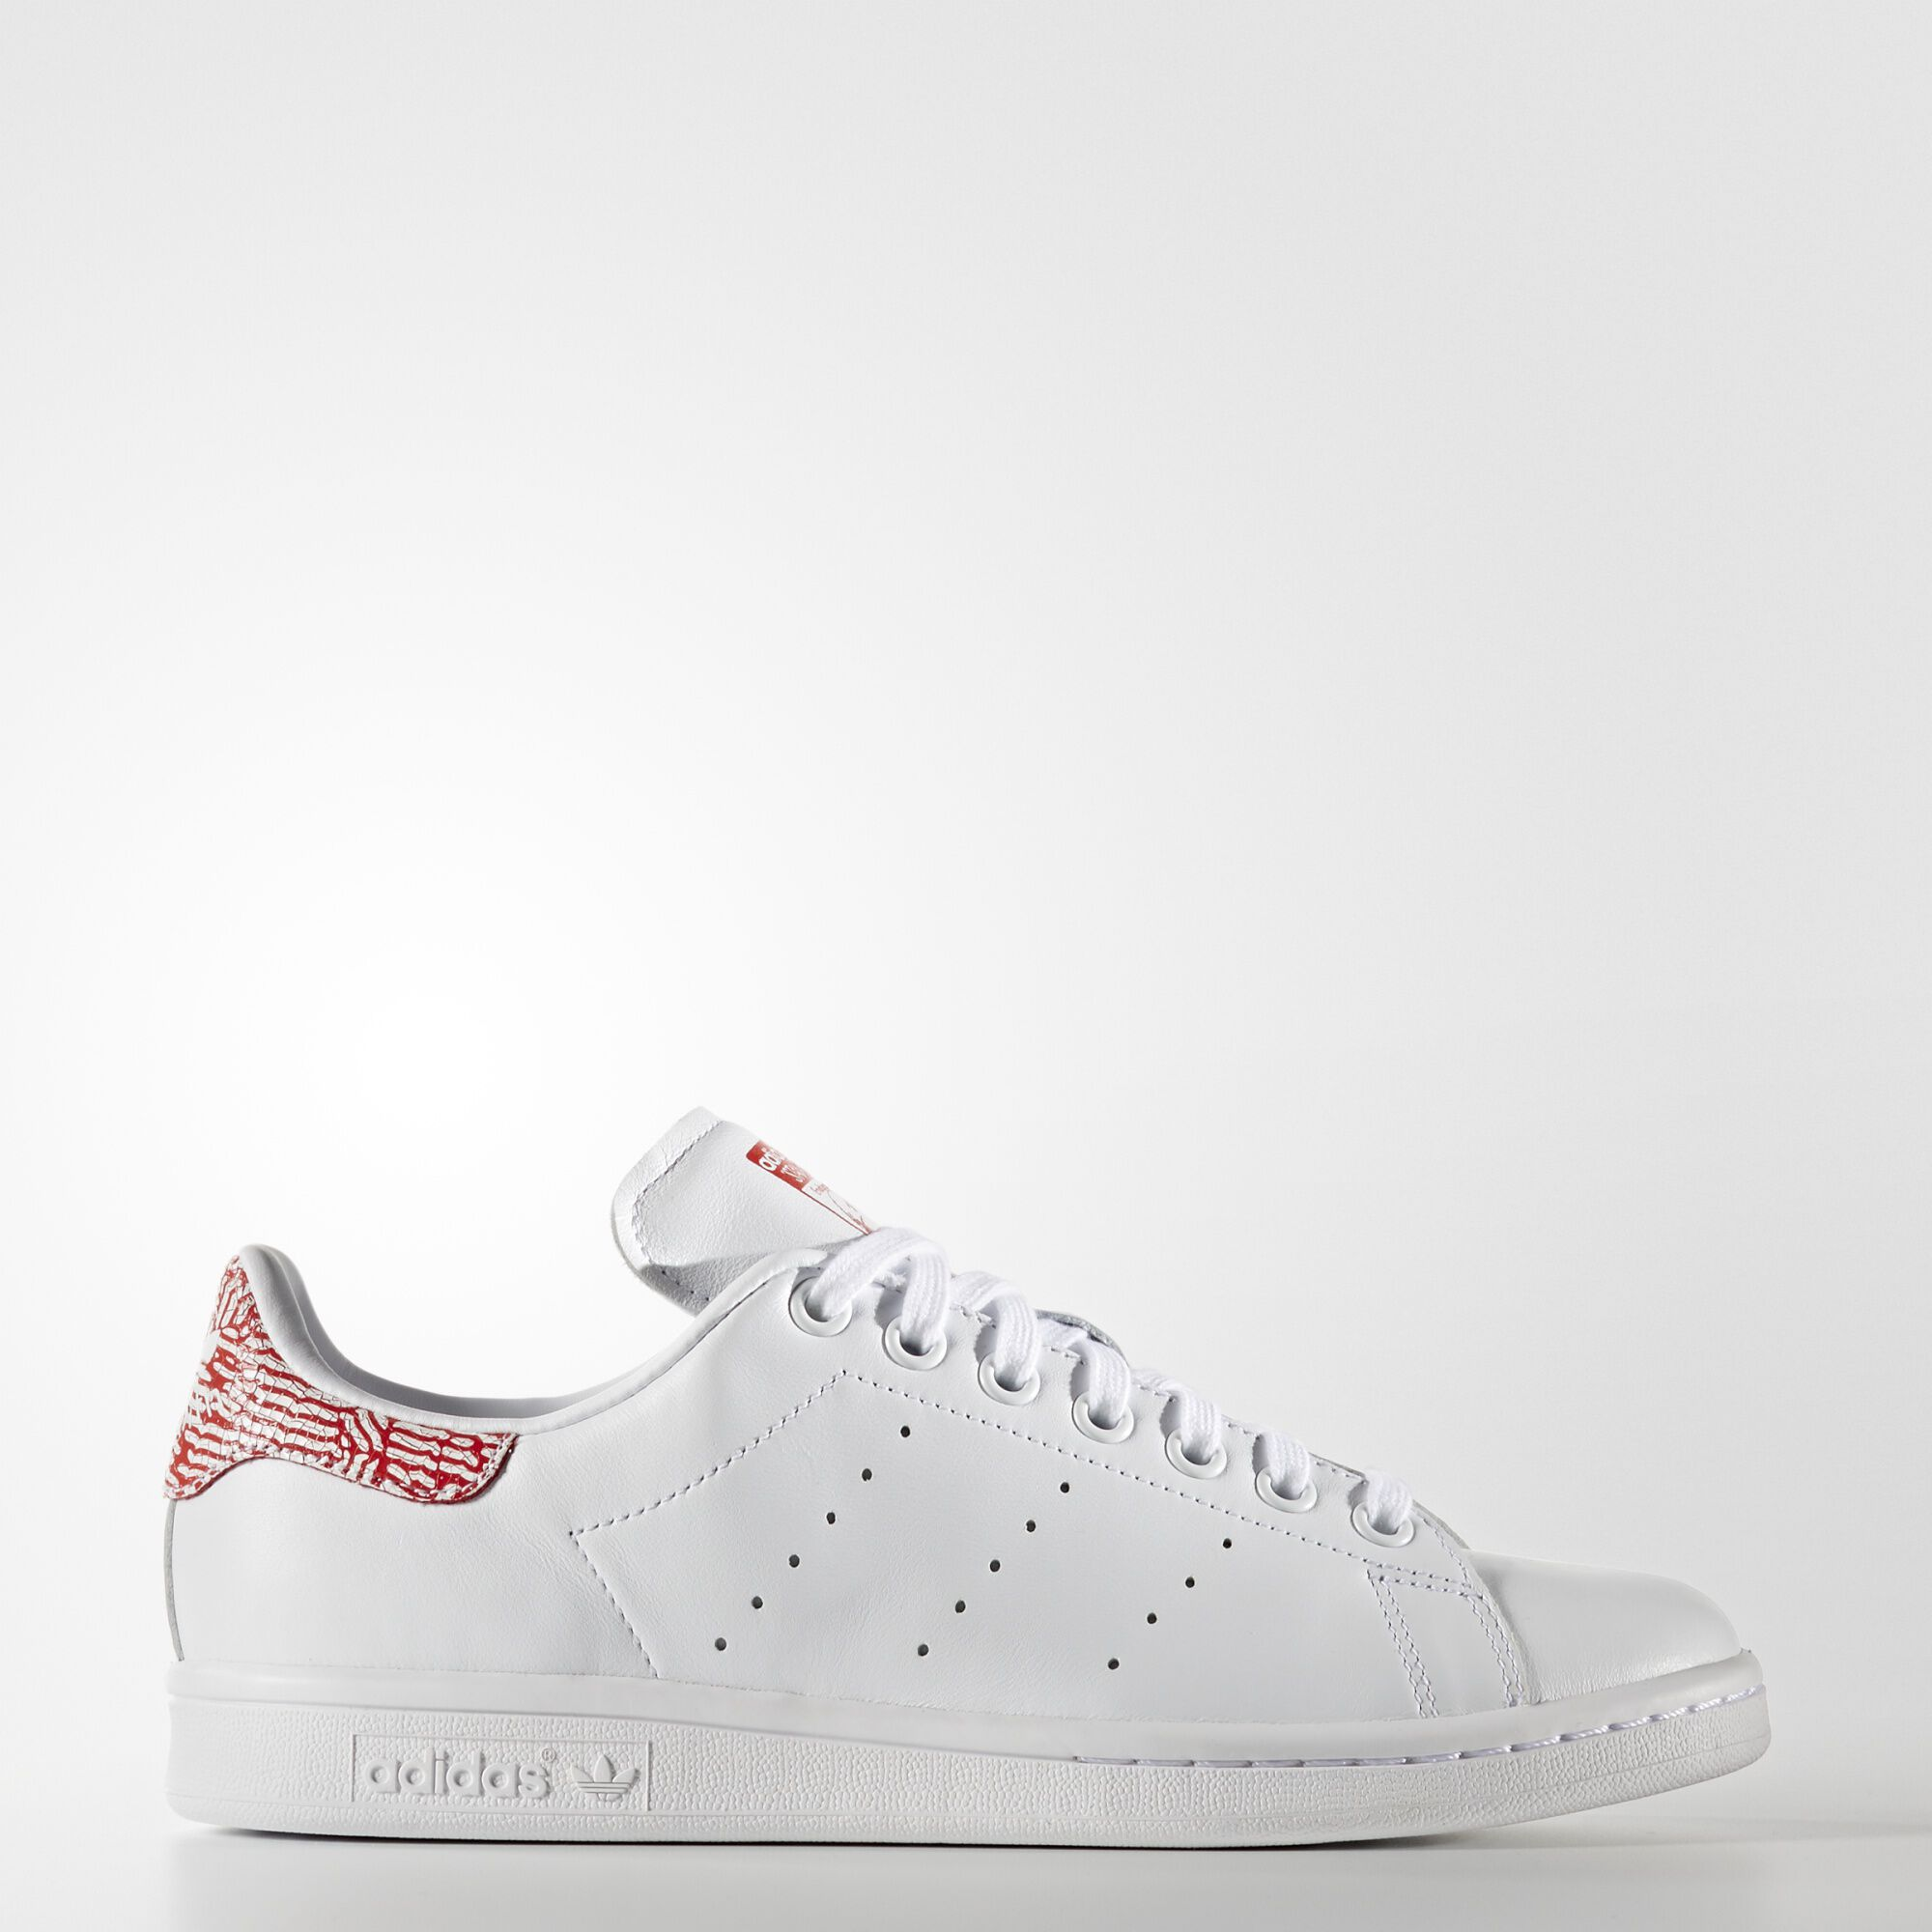 adidas stan smith shoes white adidas mlt. Black Bedroom Furniture Sets. Home Design Ideas